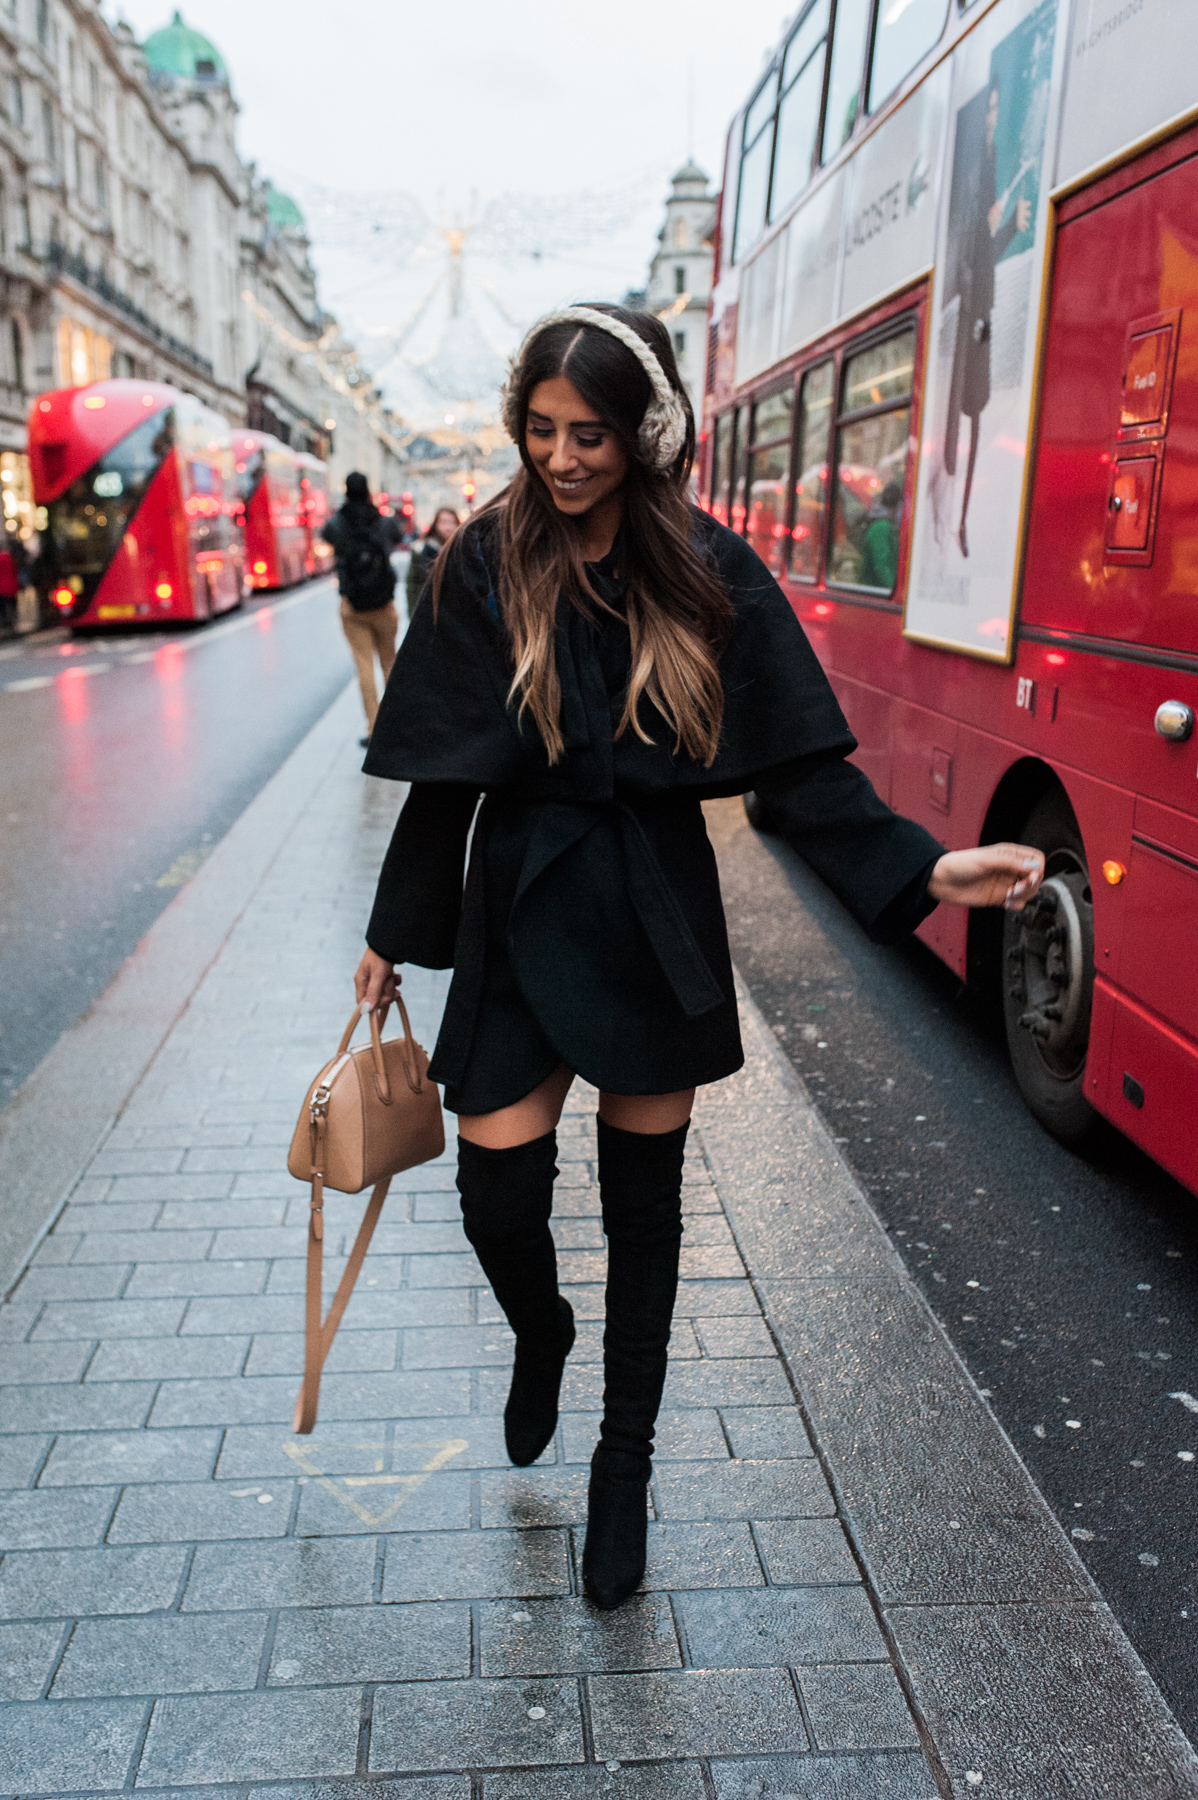 Oxford St. | Dress Up Buttercup